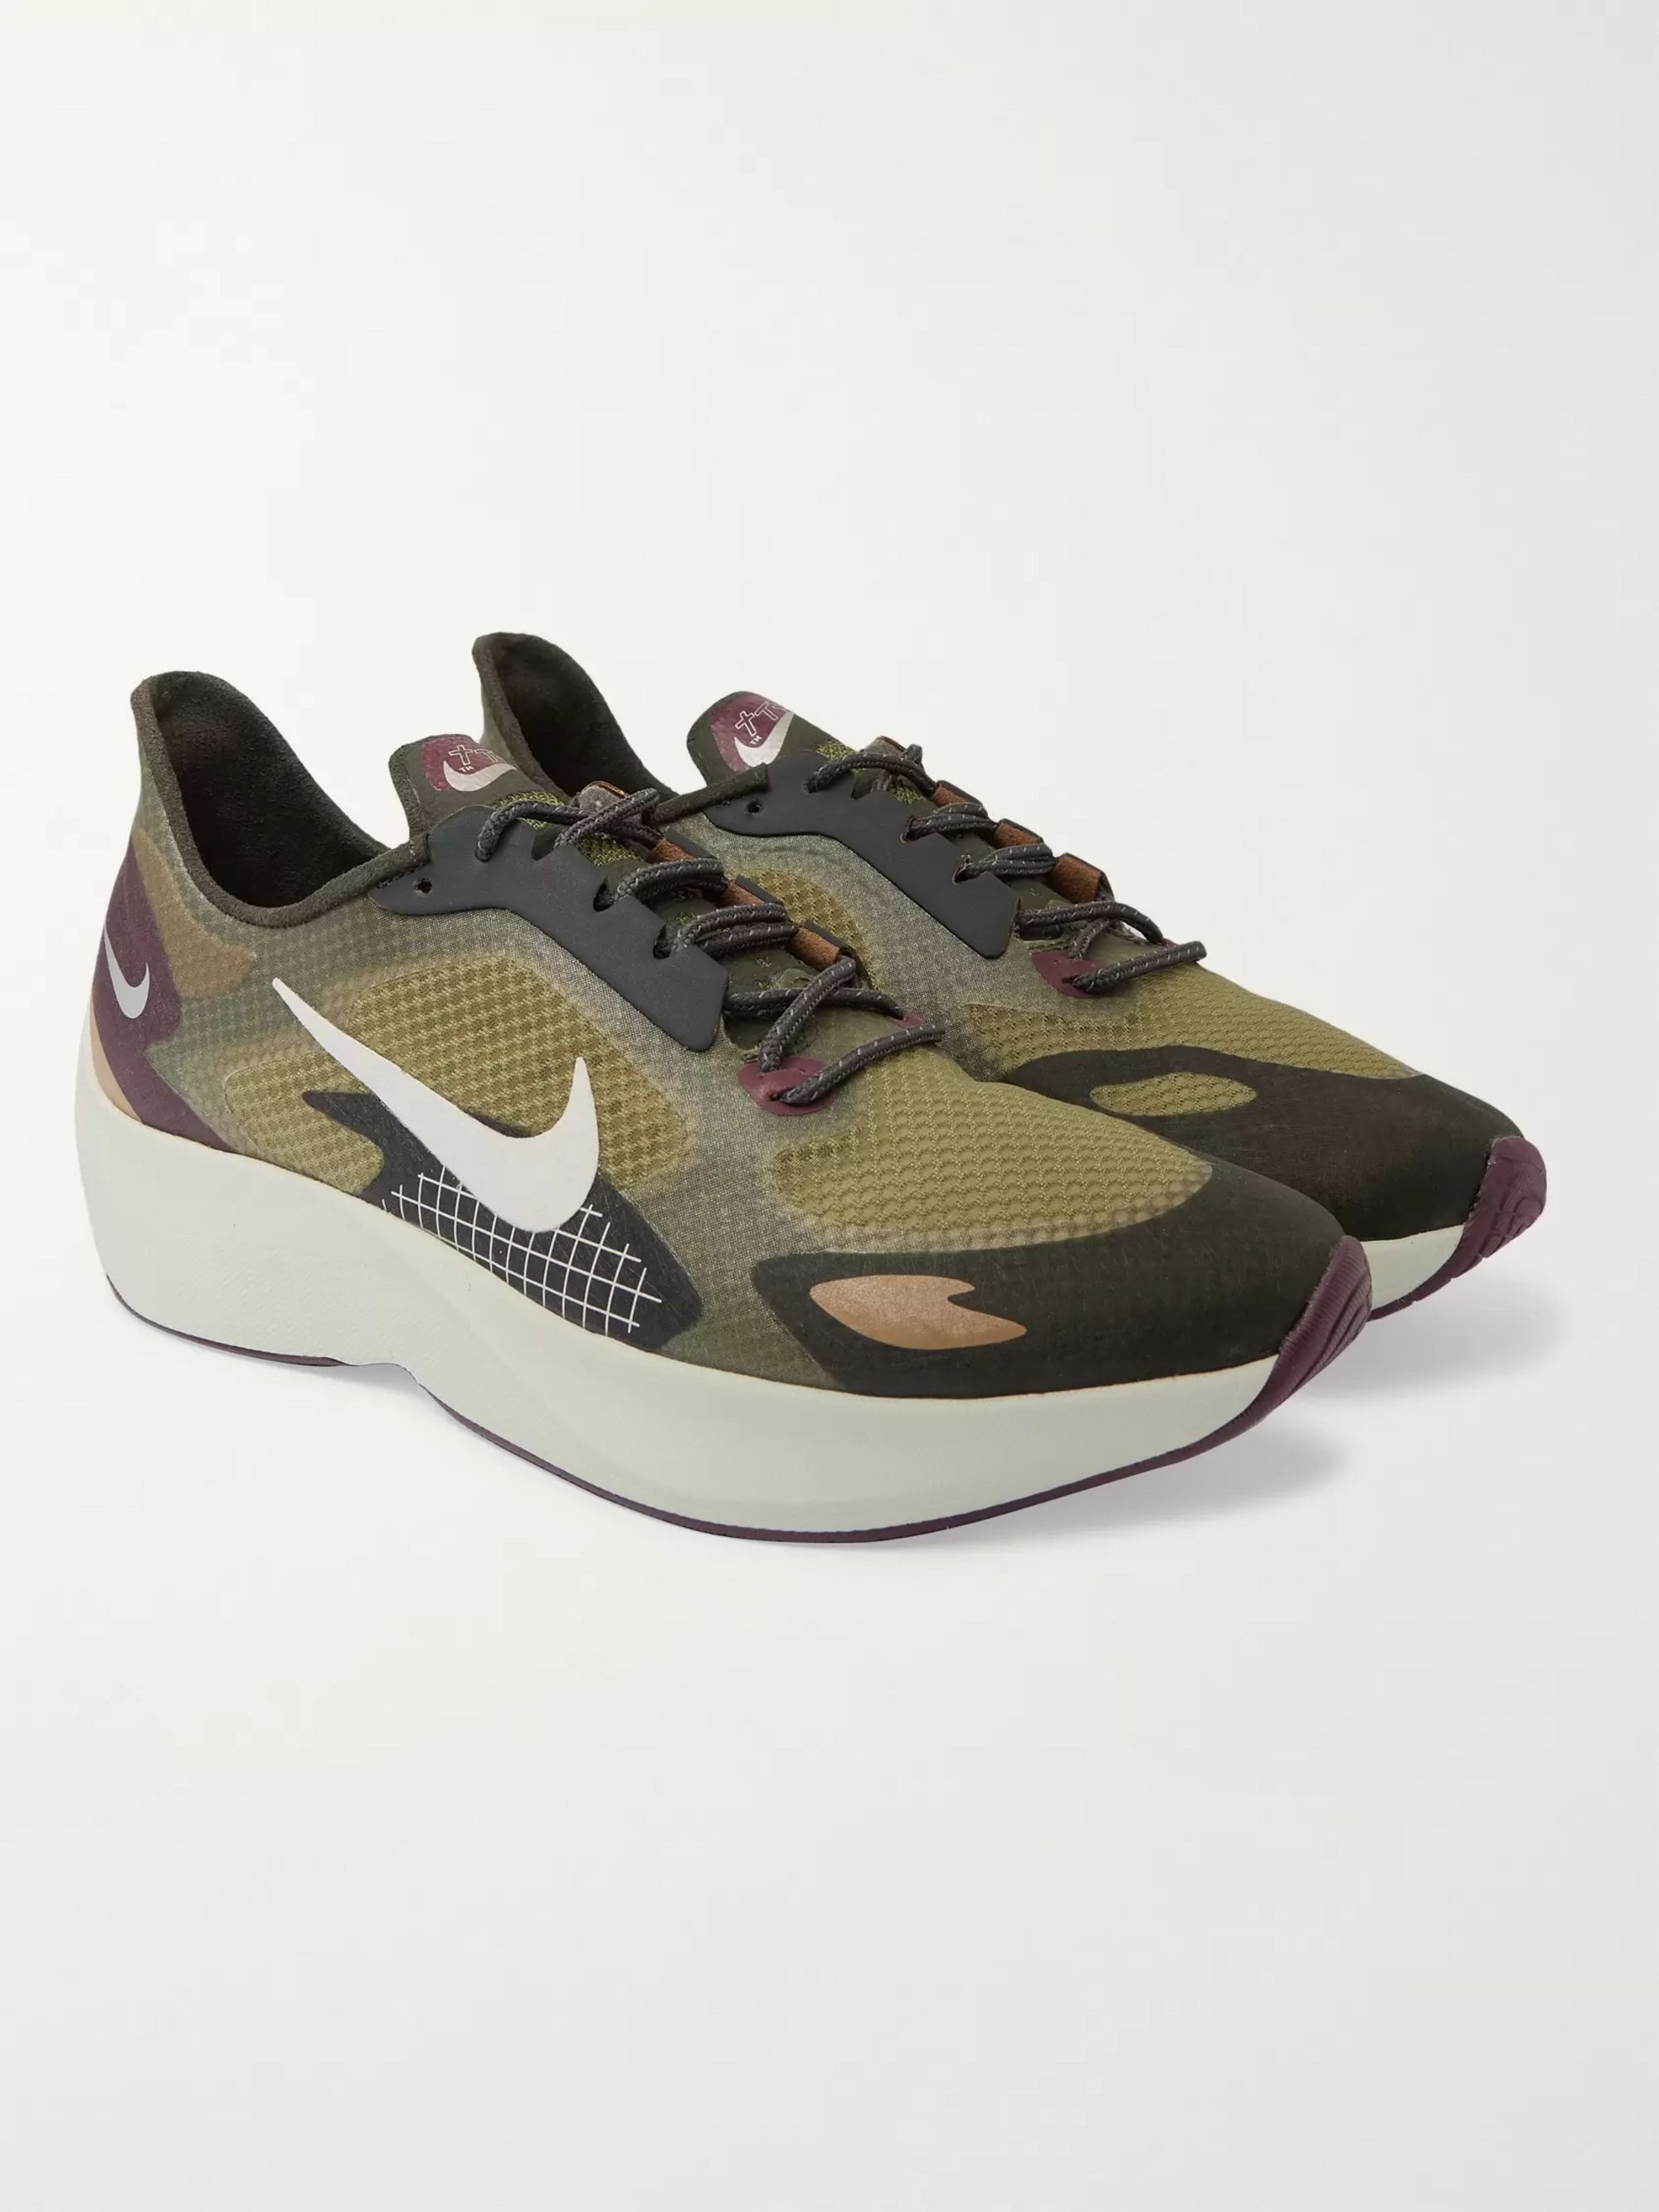 Nike Running Vapor Street PEG Rubber and Mesh Running Sneakers